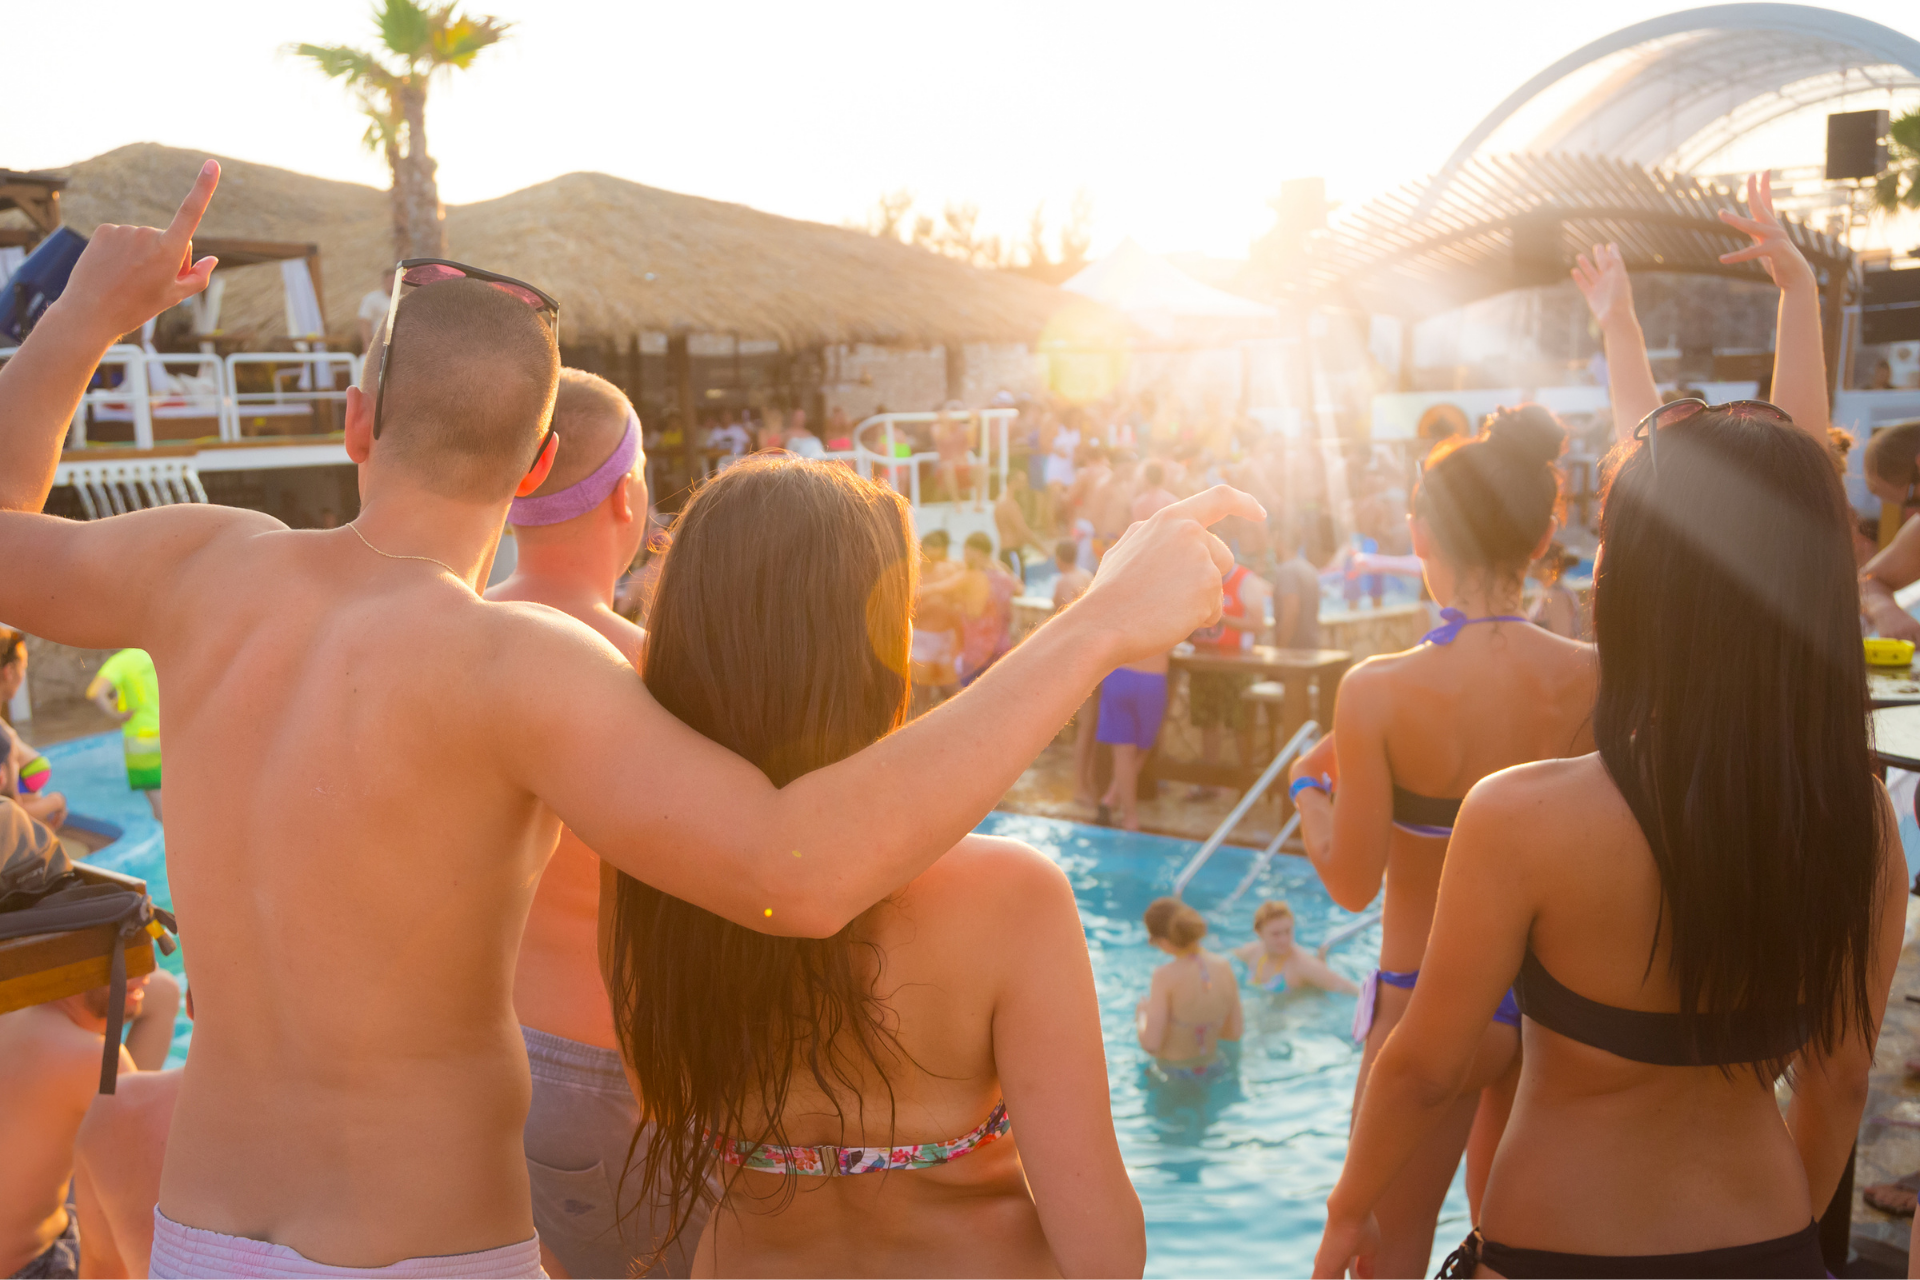 A group of people partying around a pool